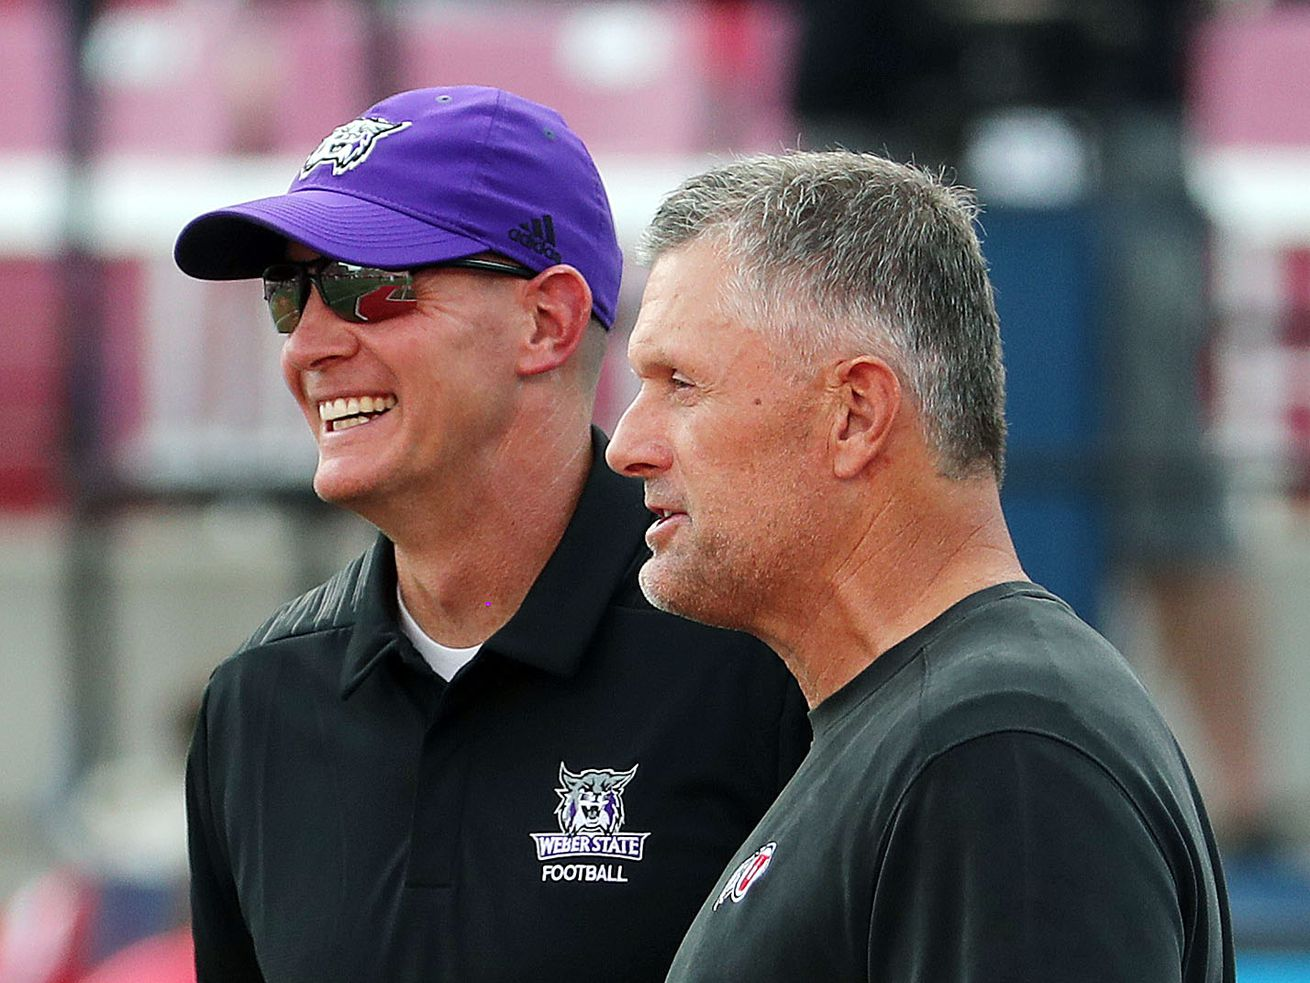 Utah Utes head coach Kyle Whittingham, right, and Weber State Wildcats head coach Jay Hill talk before NCAA football in Salt Lake City on Thursday, Aug. 30, 2018.